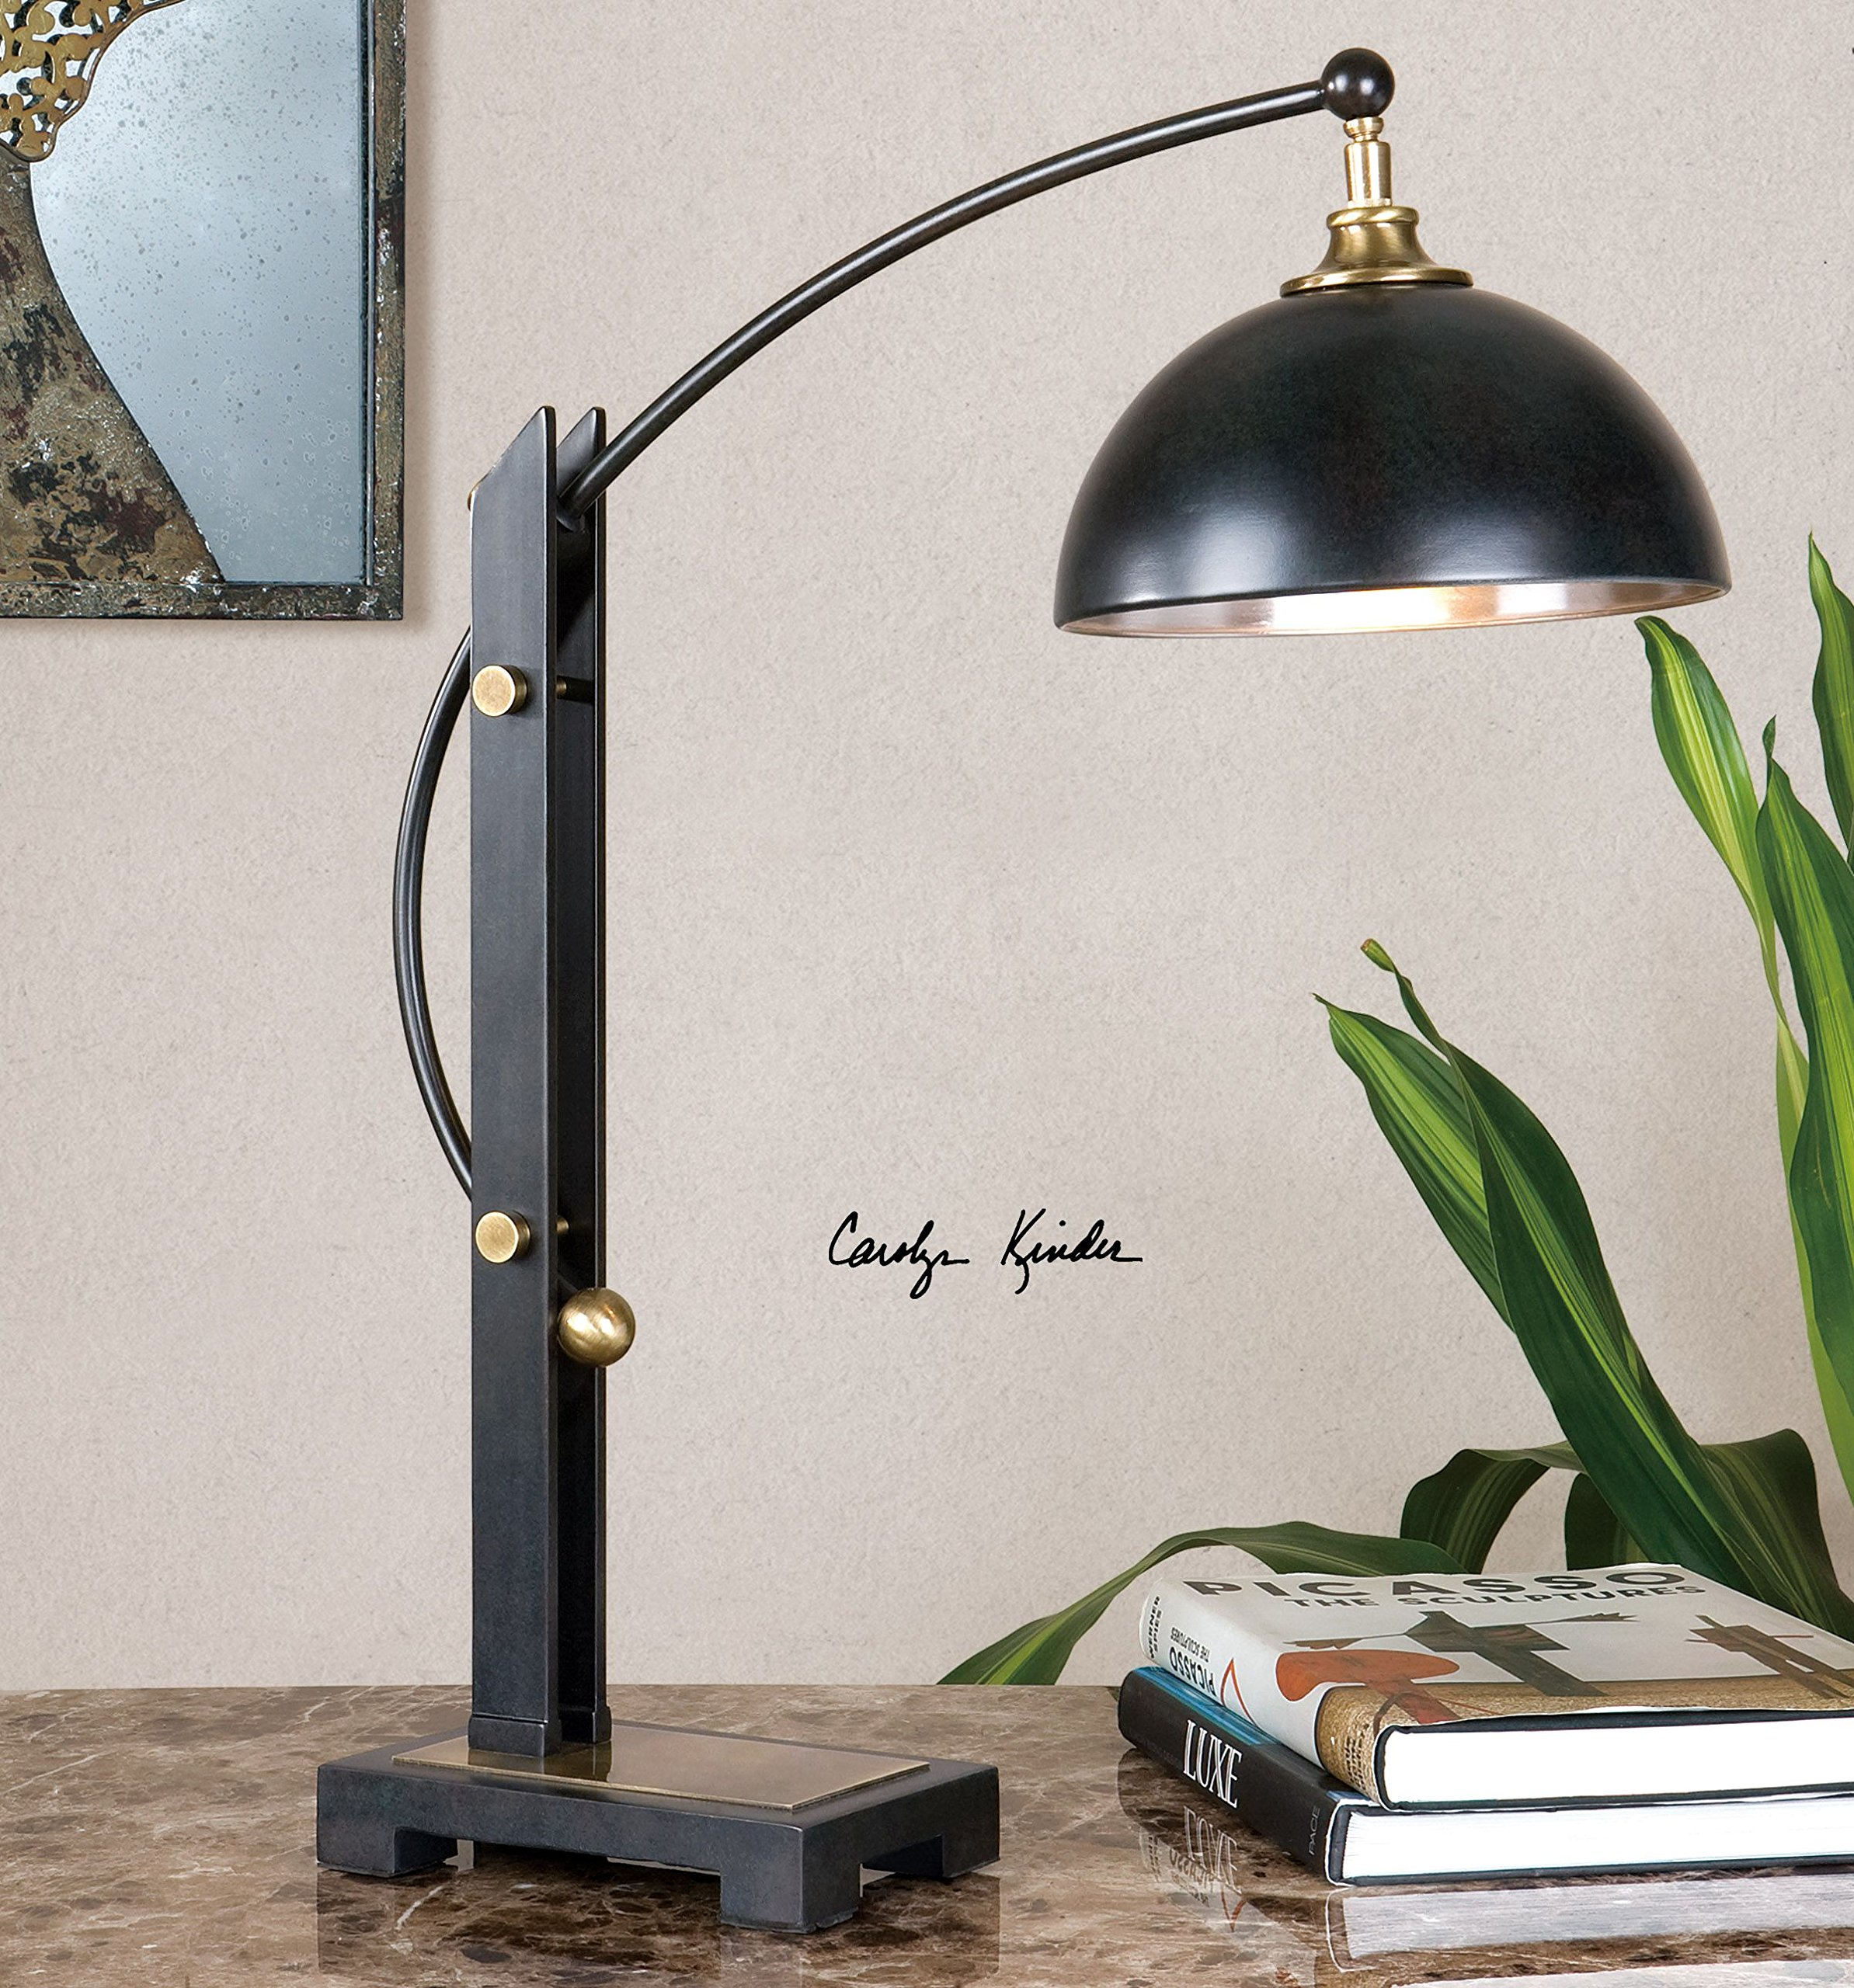 Uttermost 29587-1 Malcolm Oil Rubbed Bronze Desk Lamp by Uttermost (Image #2)